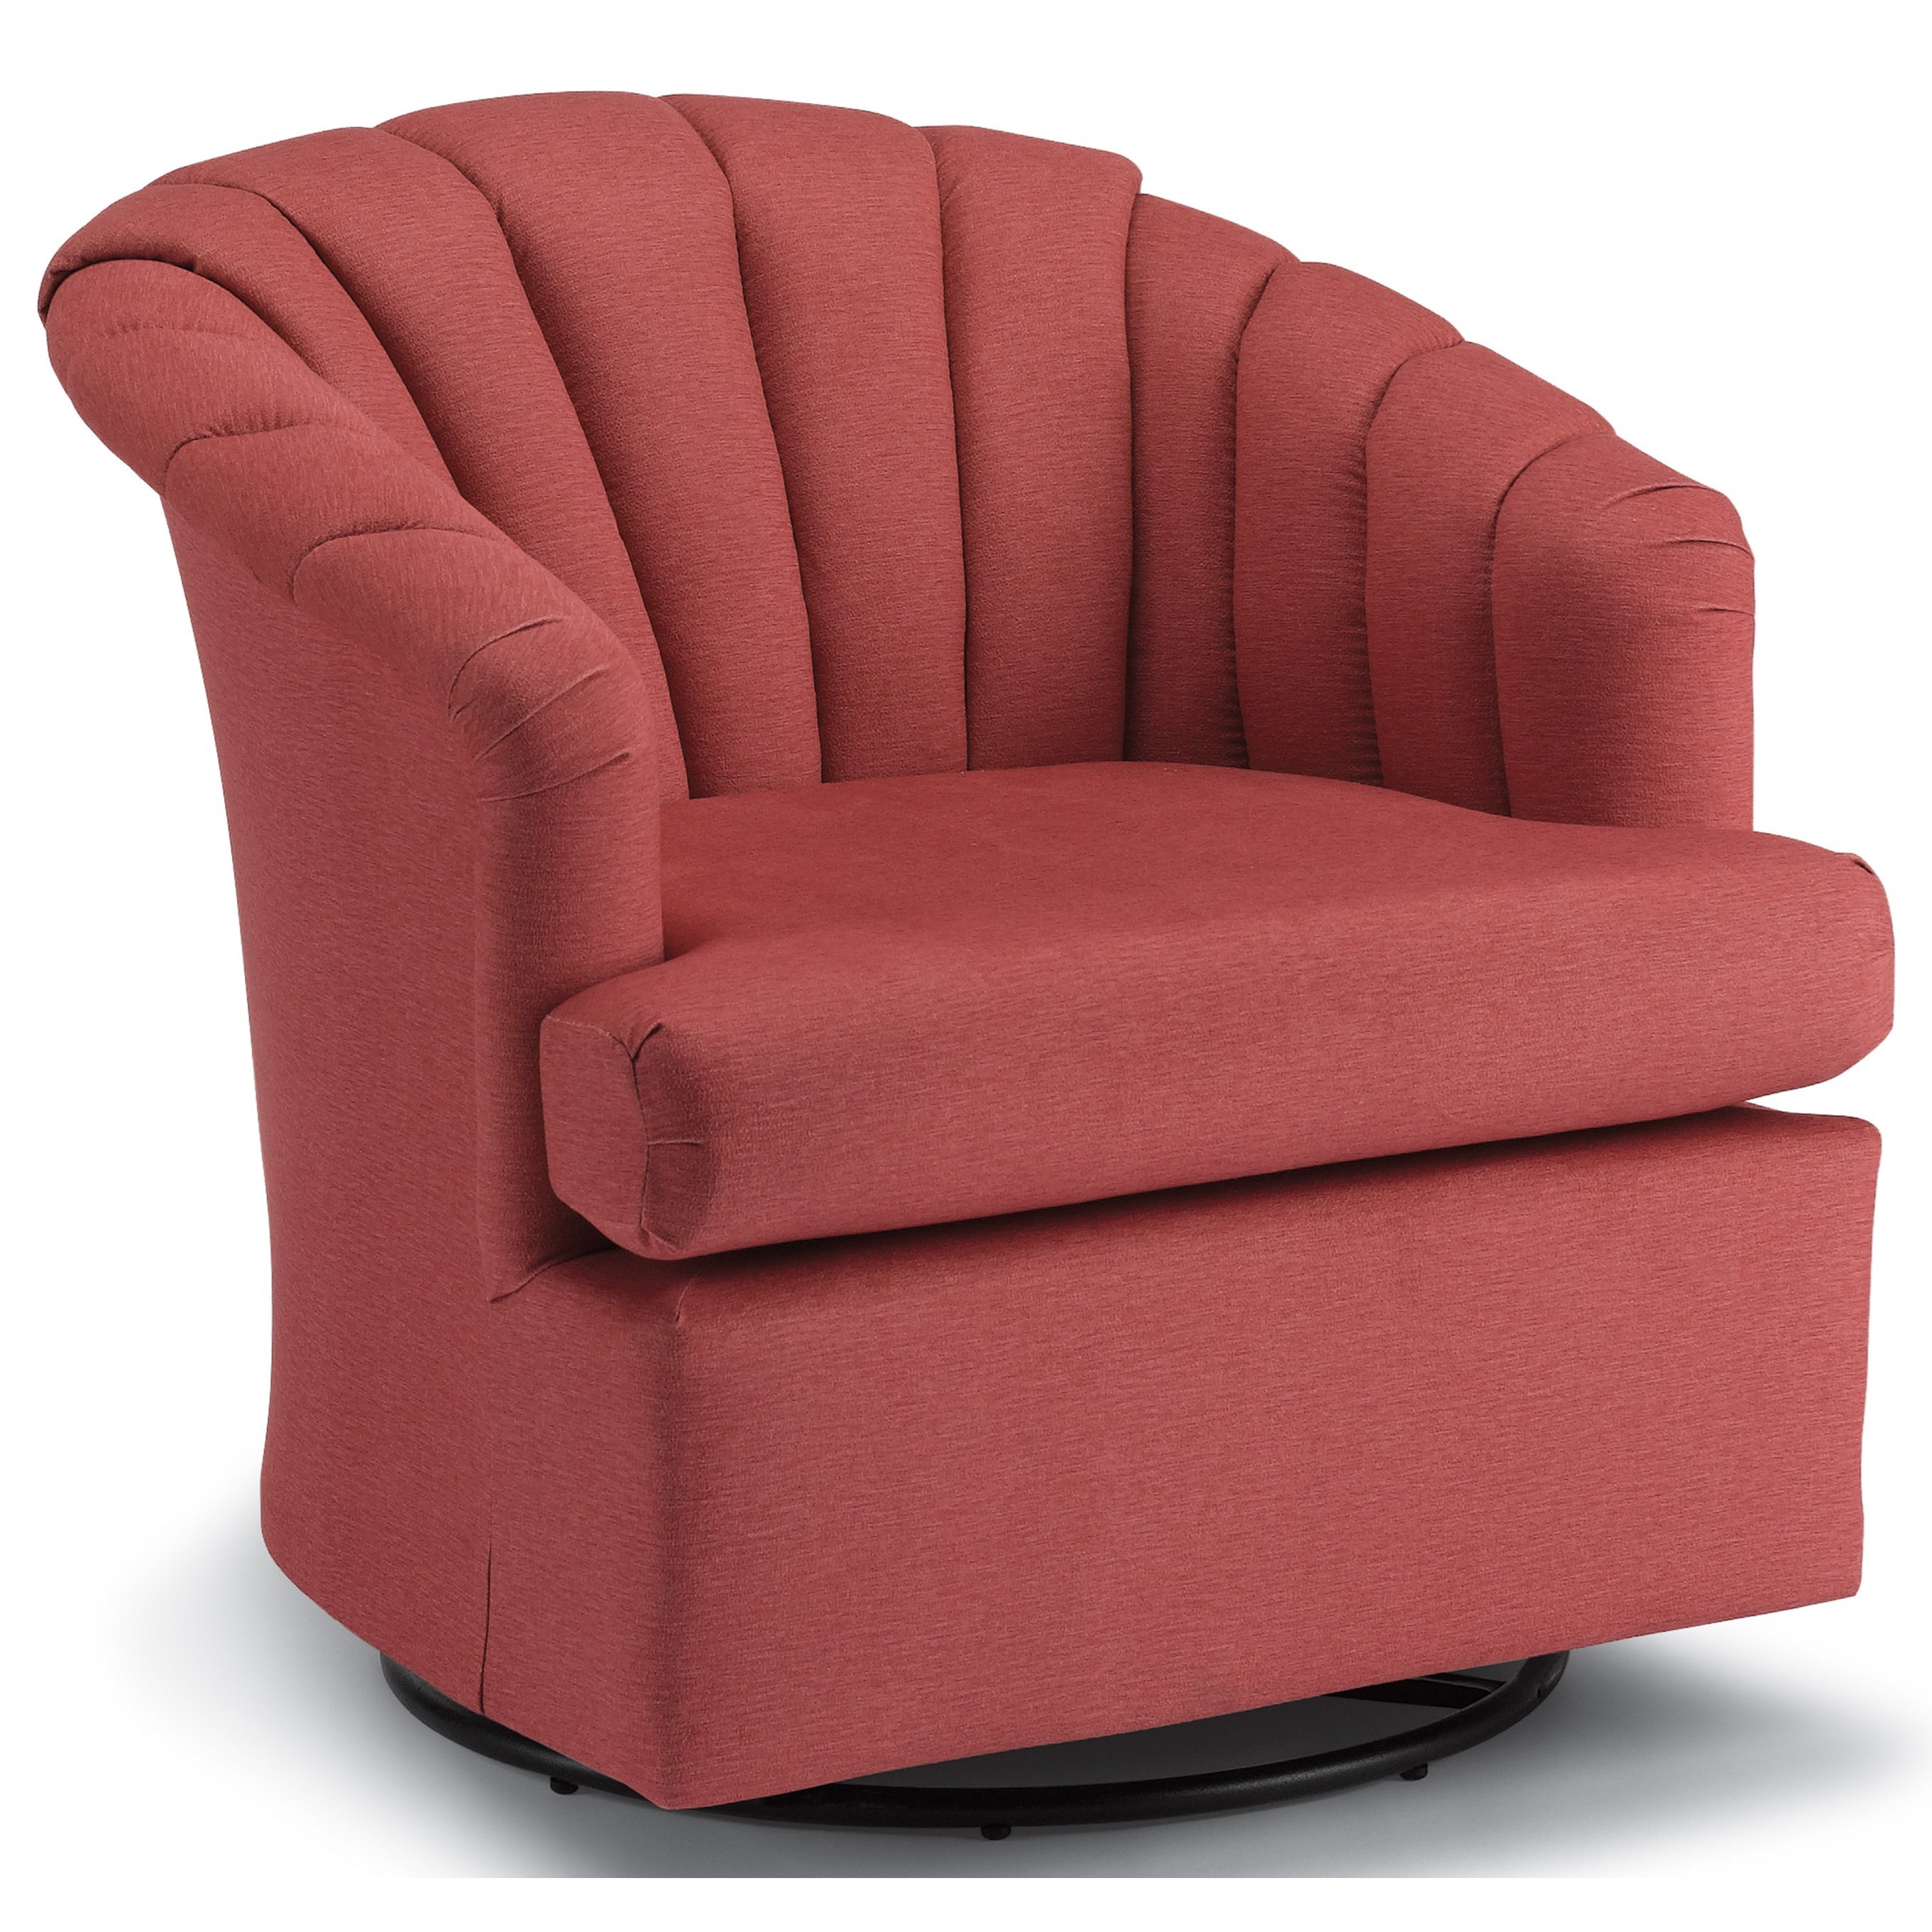 Chairs - Swivel Barrel Elaine Swivel Glider Chair by Best Home Furnishings at Turk Furniture